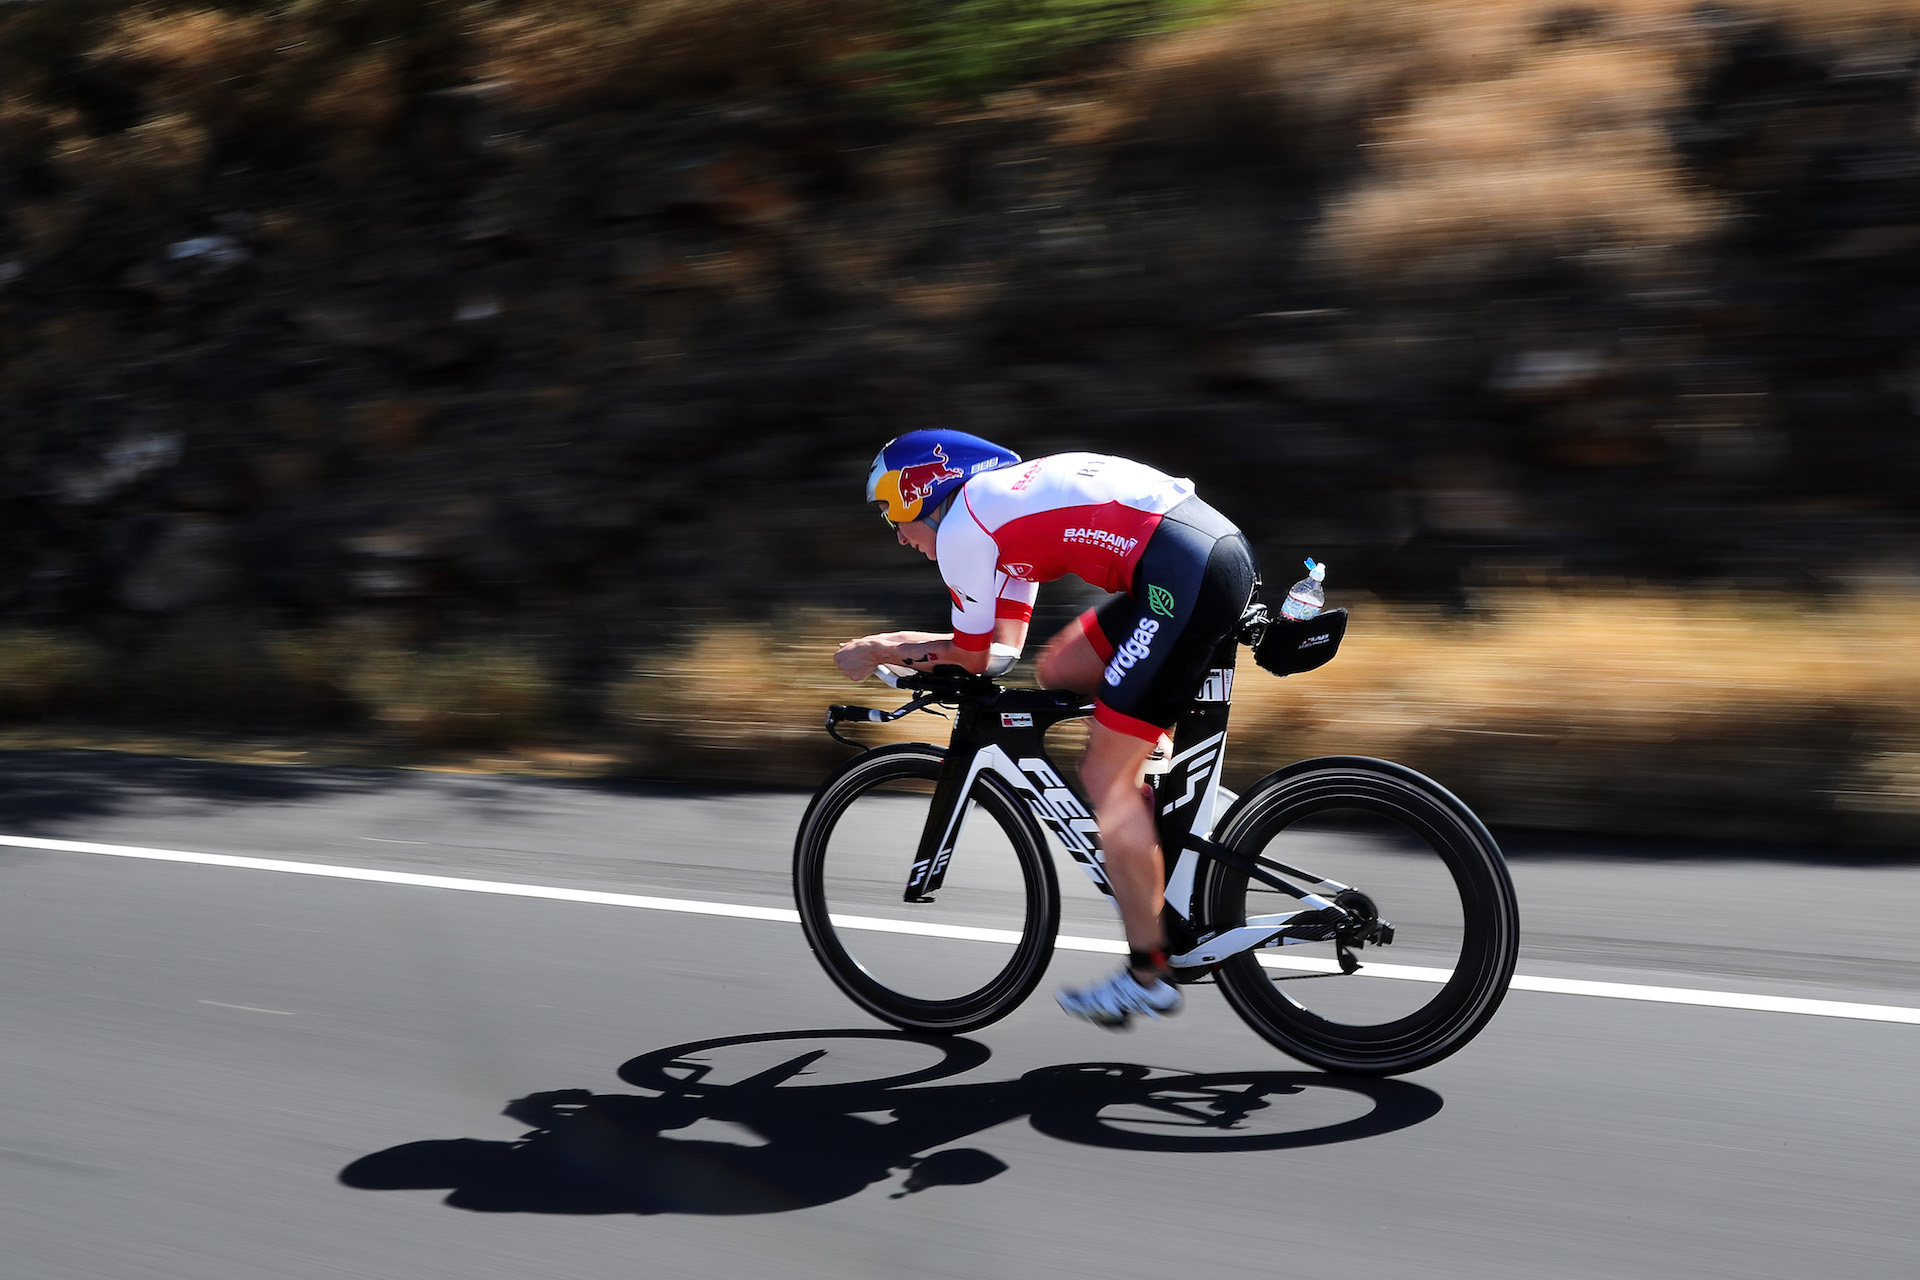 Photo by Tom Pennington/Getty Images for Ironman